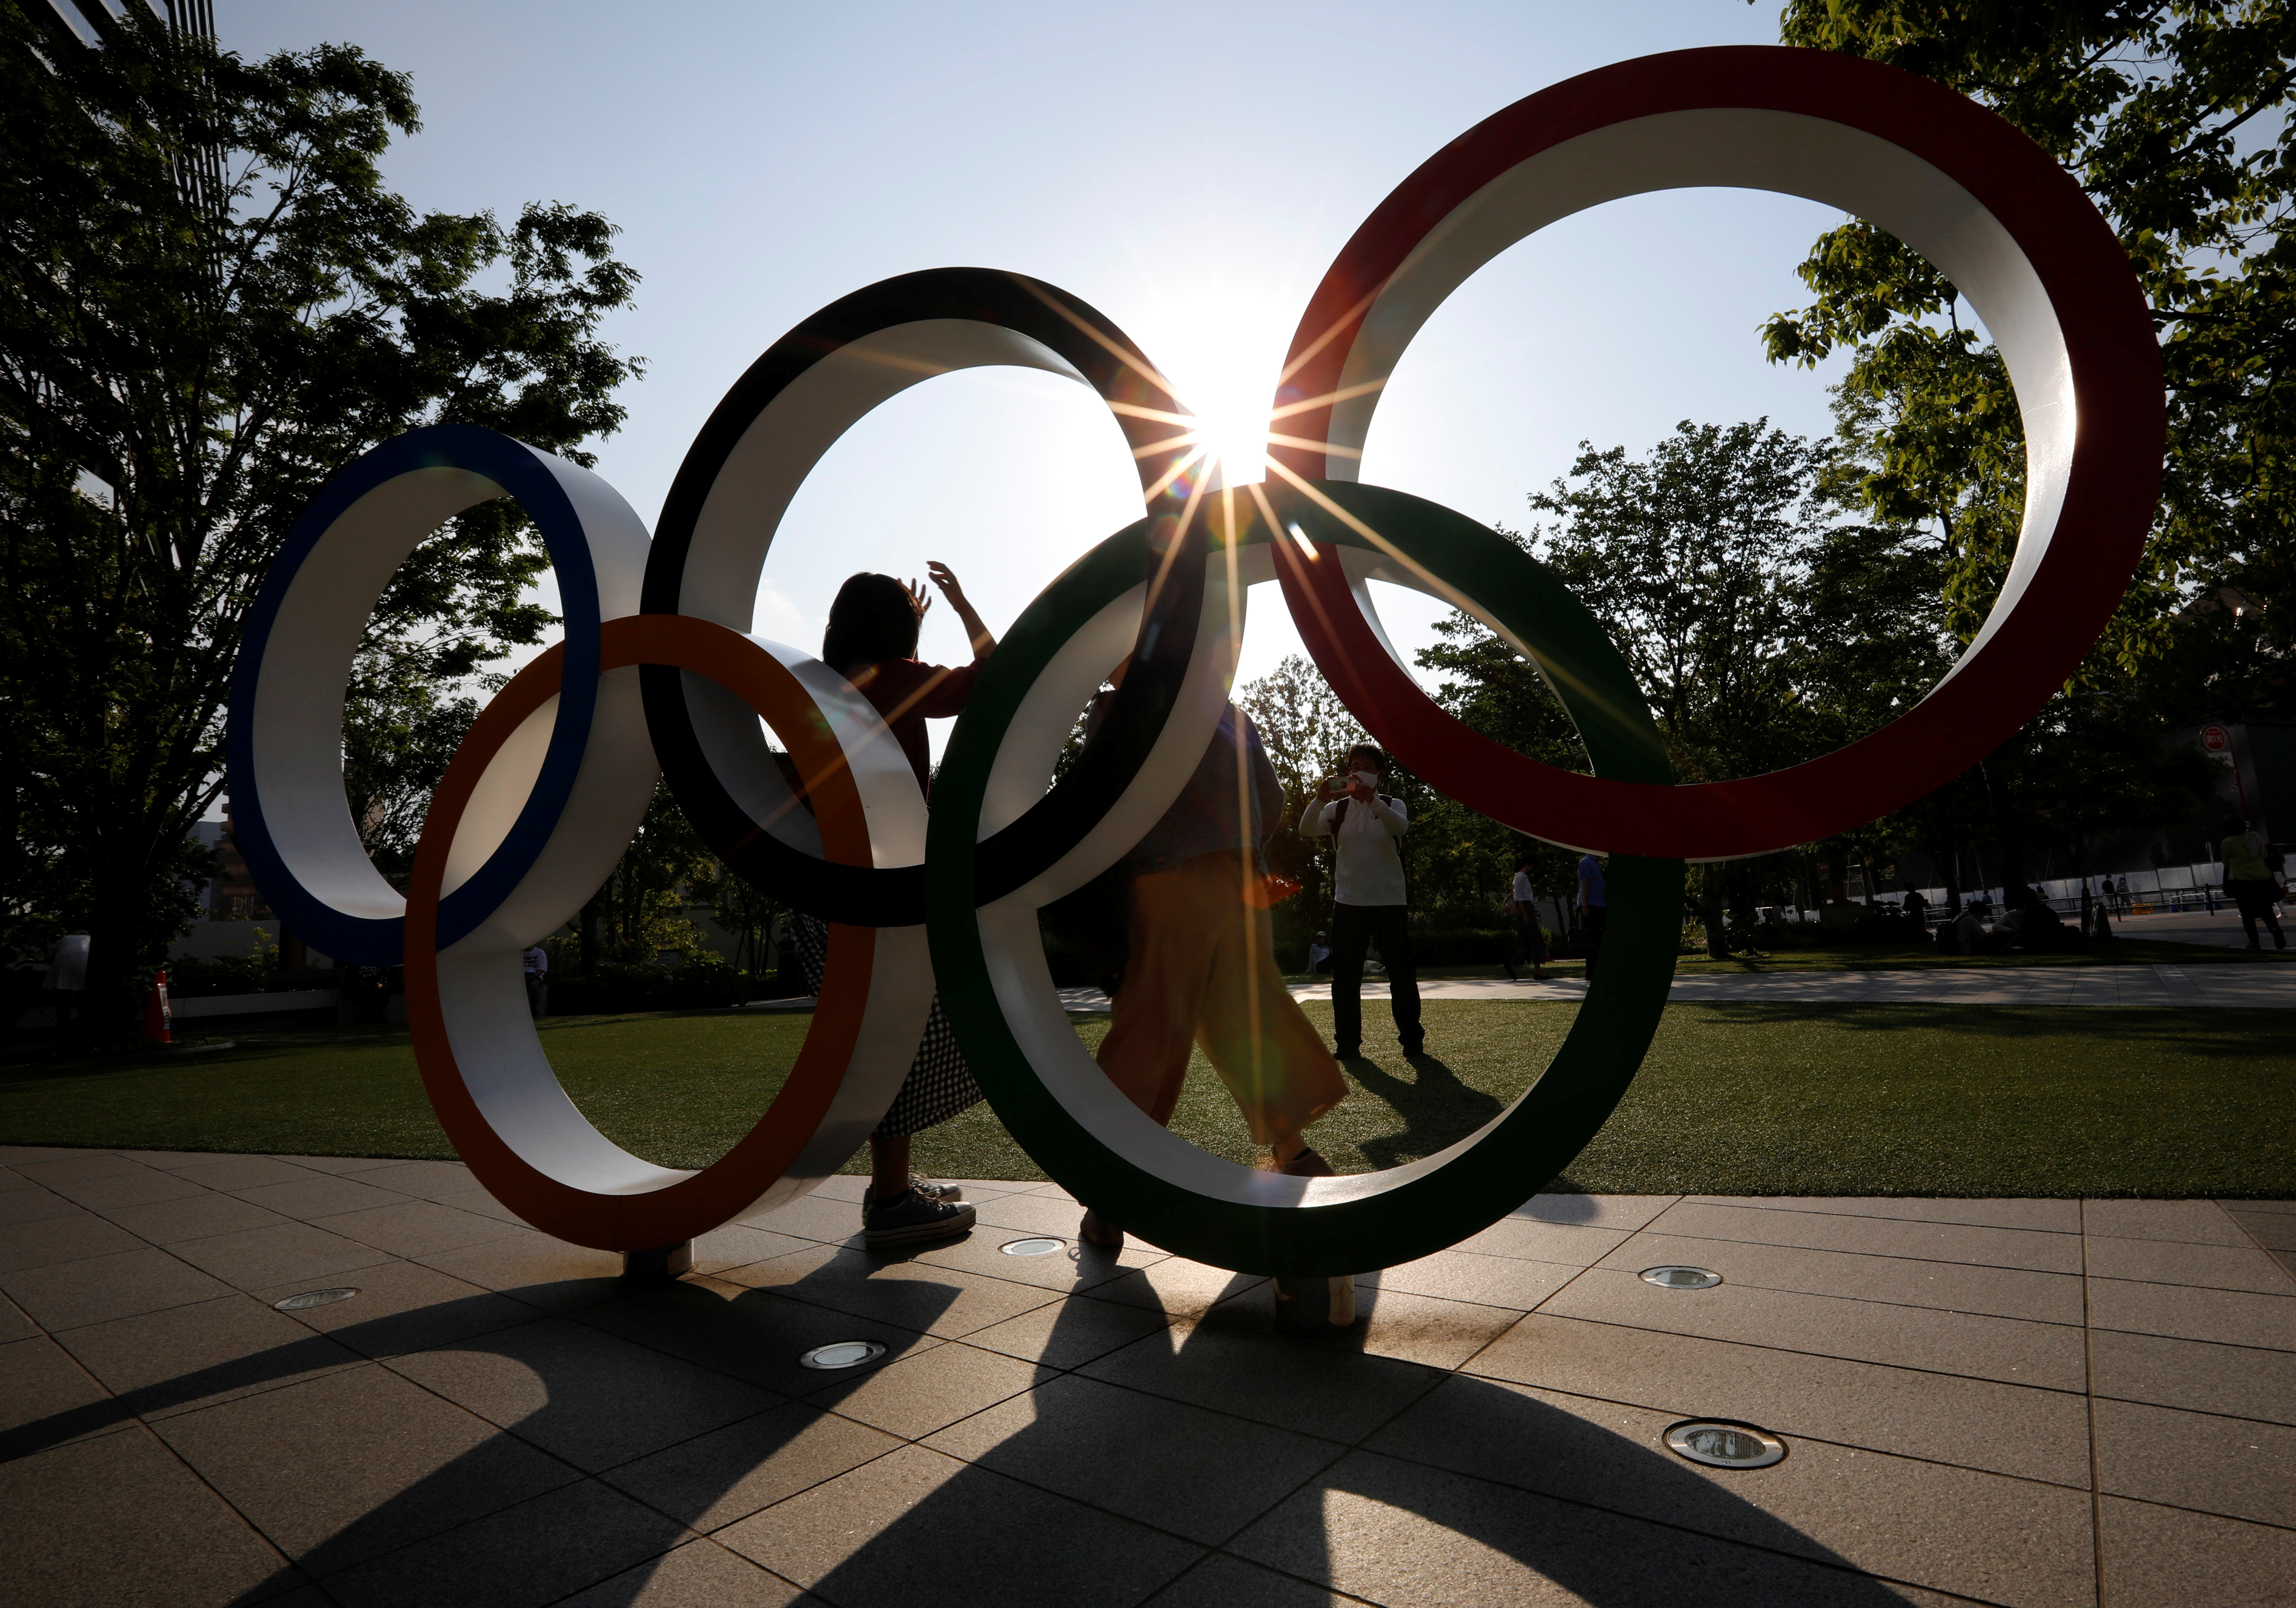 Visitors try to take photos in front of the Olympic Rings monument outside the Japan Olympic Committee (JOC) headquarters near the National Stadium, the main stadium for the 2020 Tokyo Olympic Games that have been postponed to 2021 due to the coronavirus disease (COVID-19) outbreak, in Tokyo, Japan May 30, 2021.  REUTERS/Issei Kato